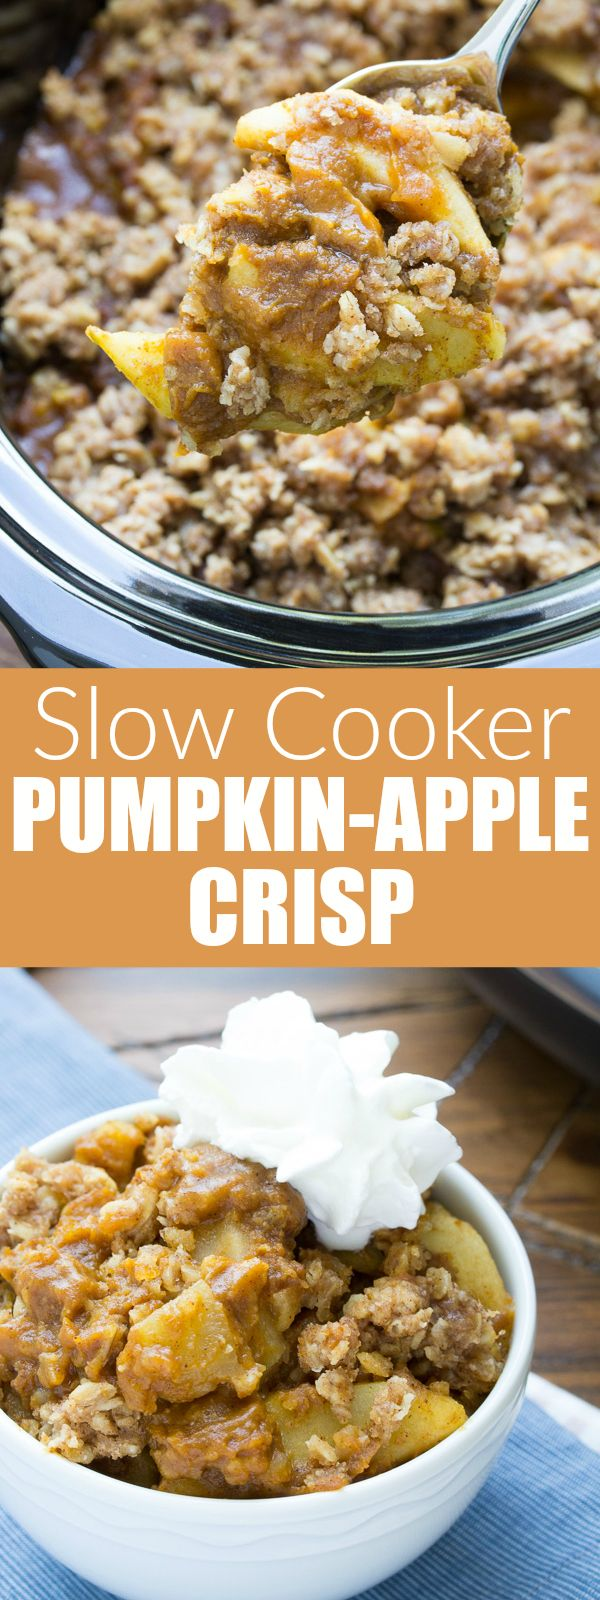 This Slow Cooker Pumpkin Apple Crisp is an easy dessert that's made completely in your crock pot! With juicy apples and a healthier pumpkin pie filling, it's like apple crisp and pumpkin pie in one. A perfect Thanksgiving dessert! | www.kristineskitchenblog.com